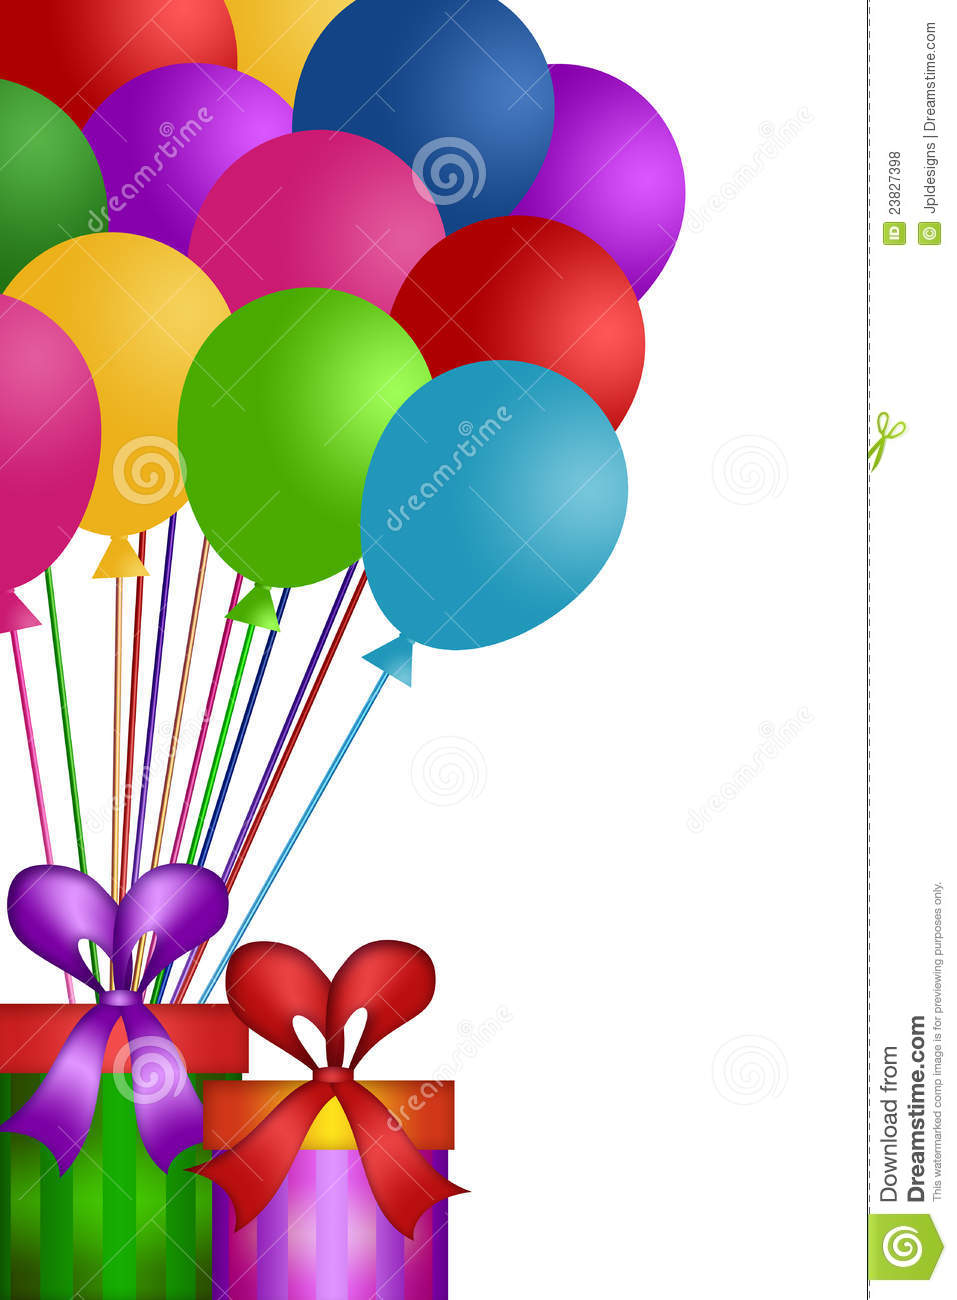 Balloons With Gift Wrapped Presents Royalty Free Stock